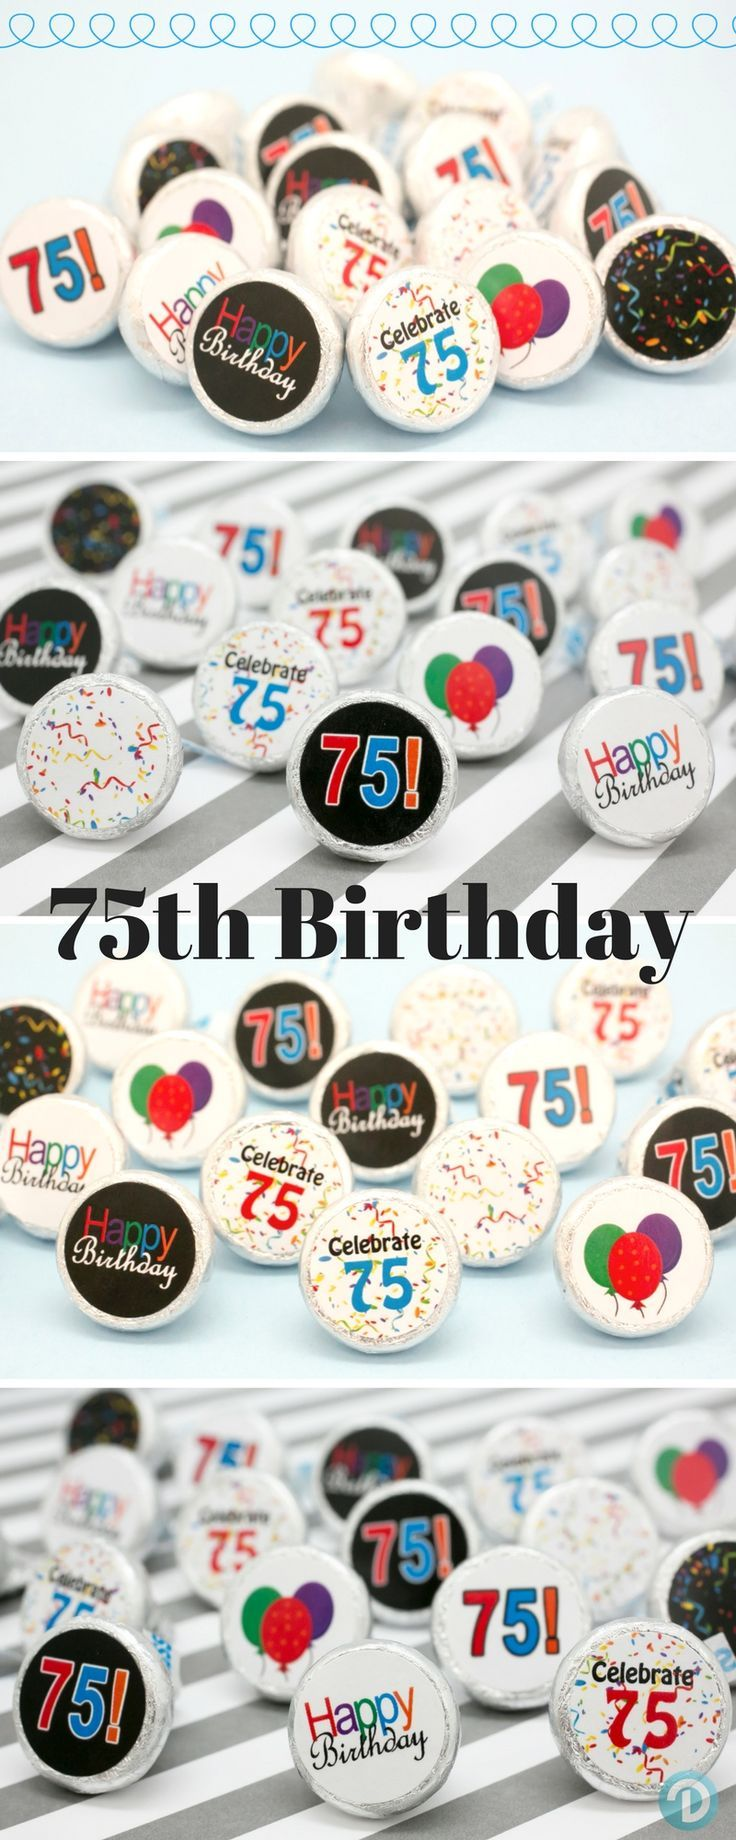 Happy 75th Birthday Looking For A Unique Party Favor Or Table Scatter Decorations See How You Can Transform Simple Hershey Kisses Into Custom